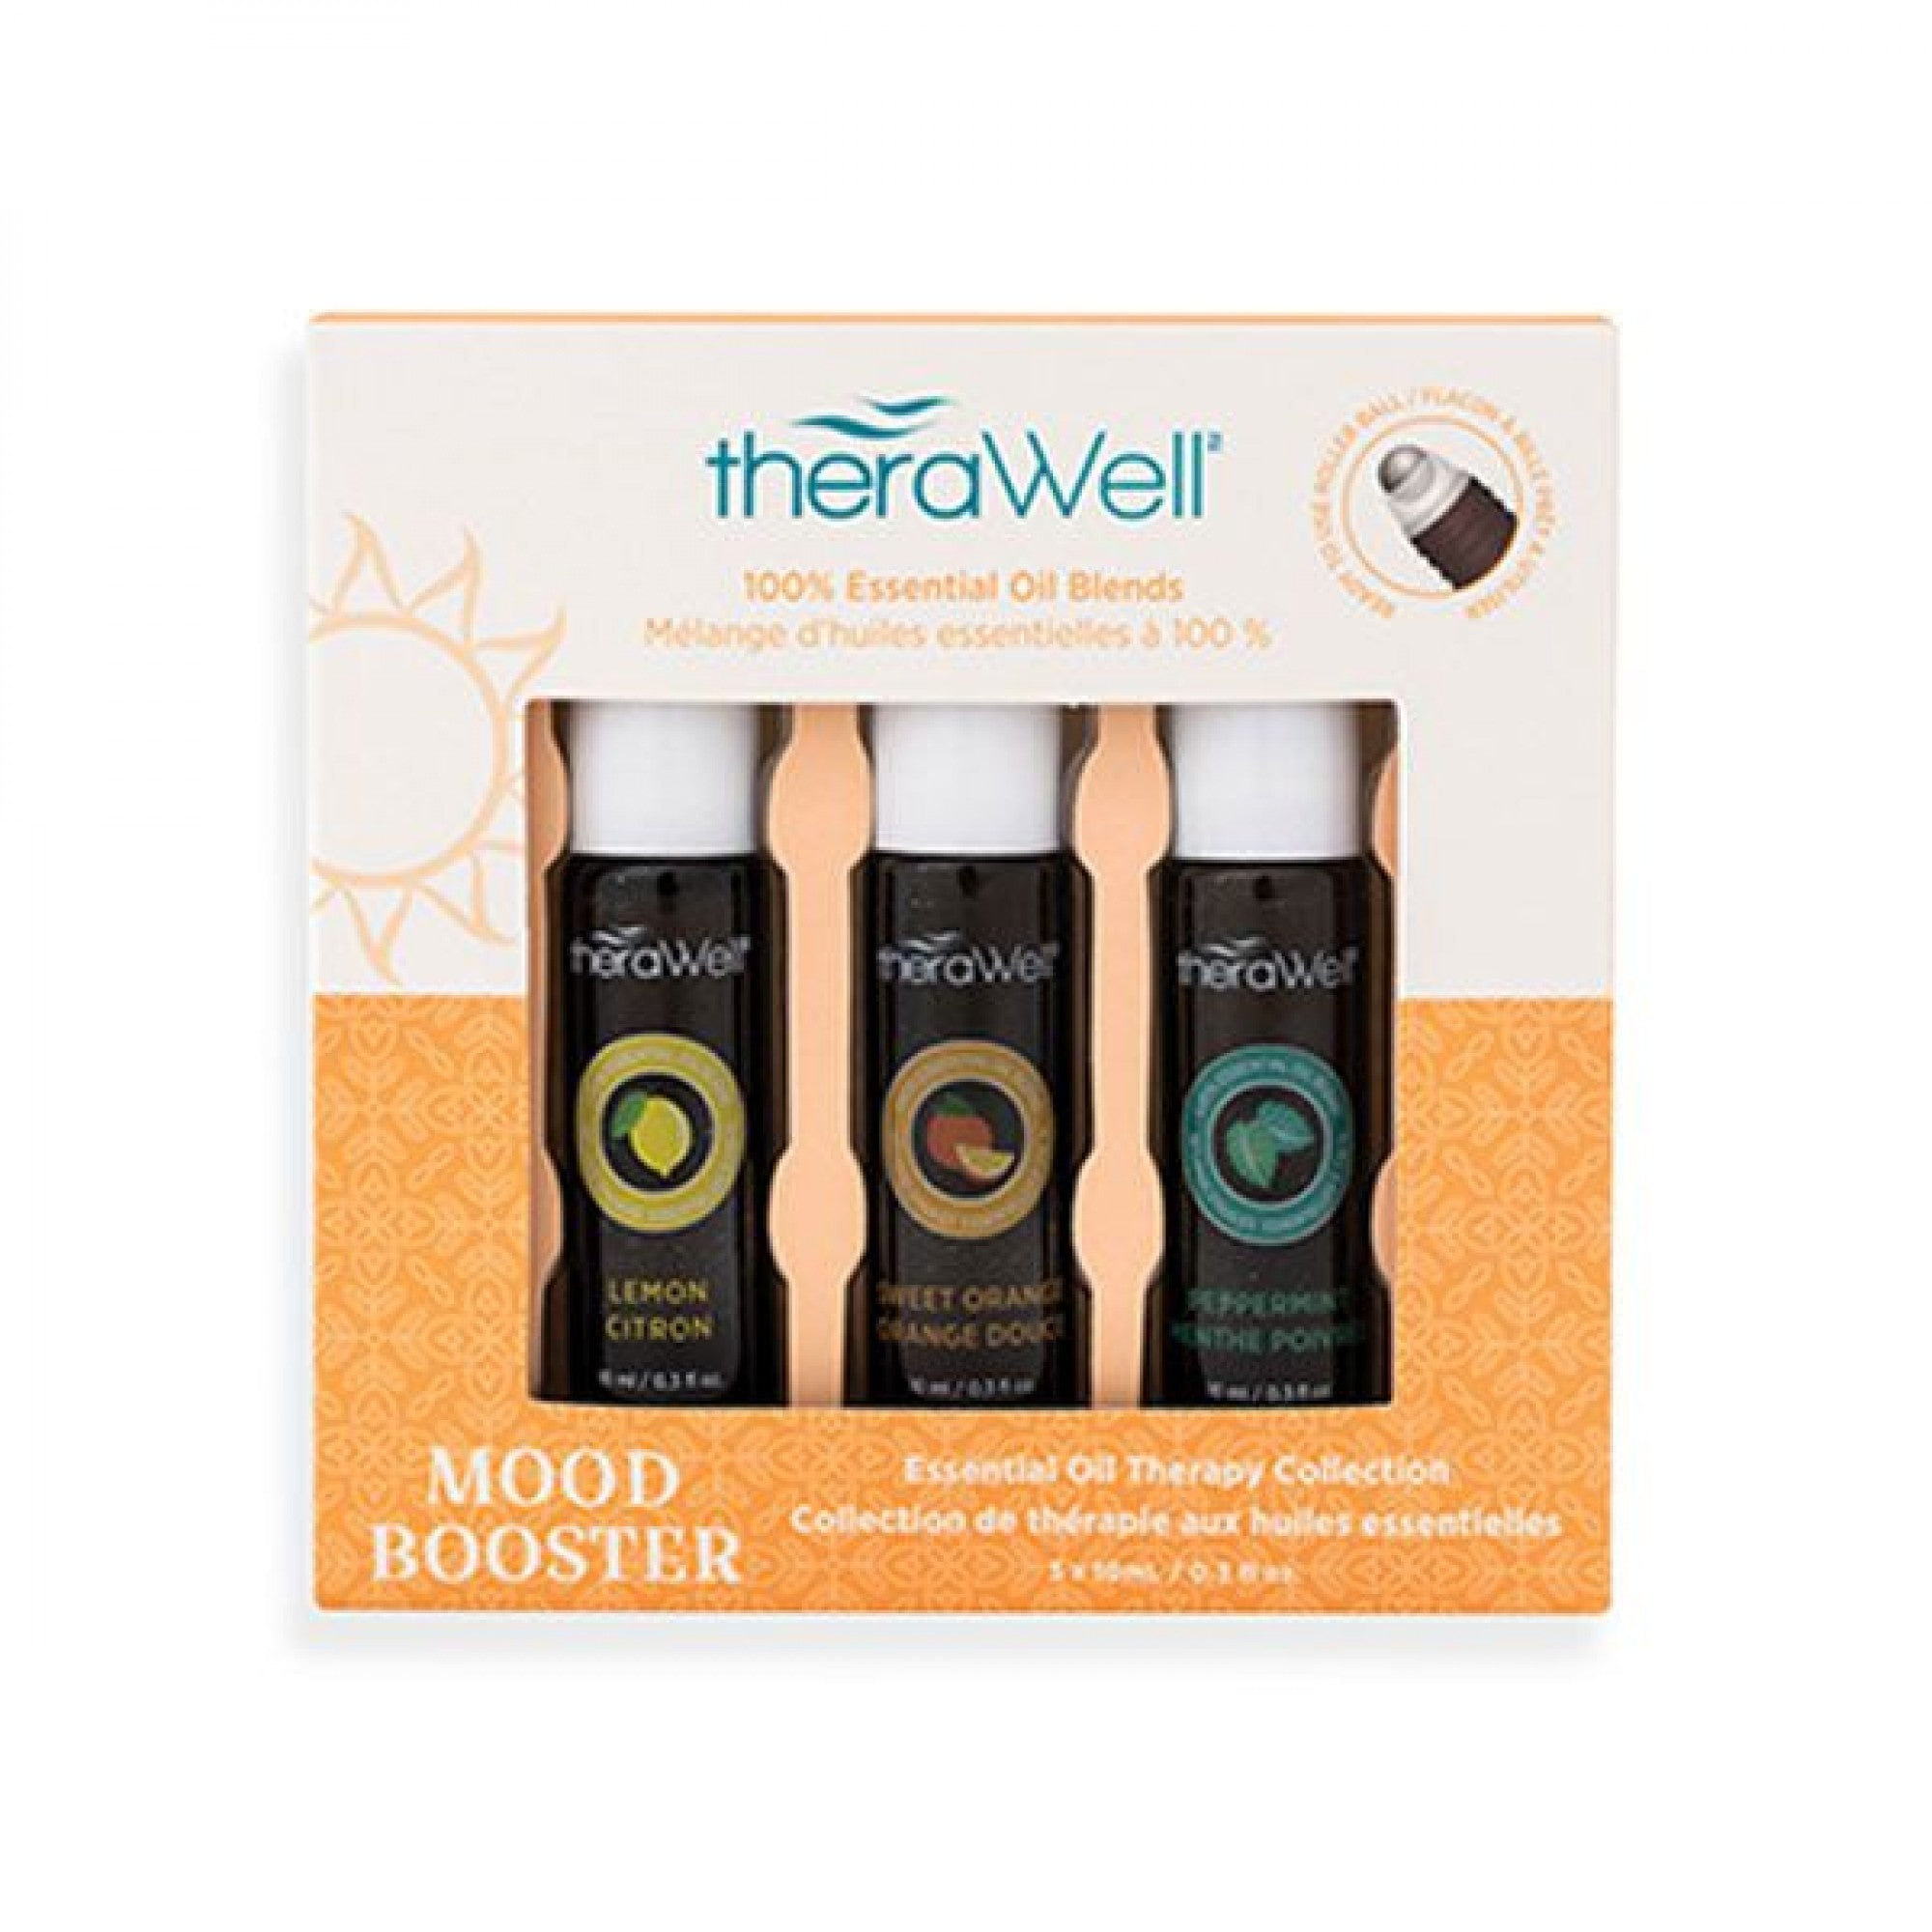 Thera Well 3-Pack Essential Oil Rollerball Set - Mood Booster